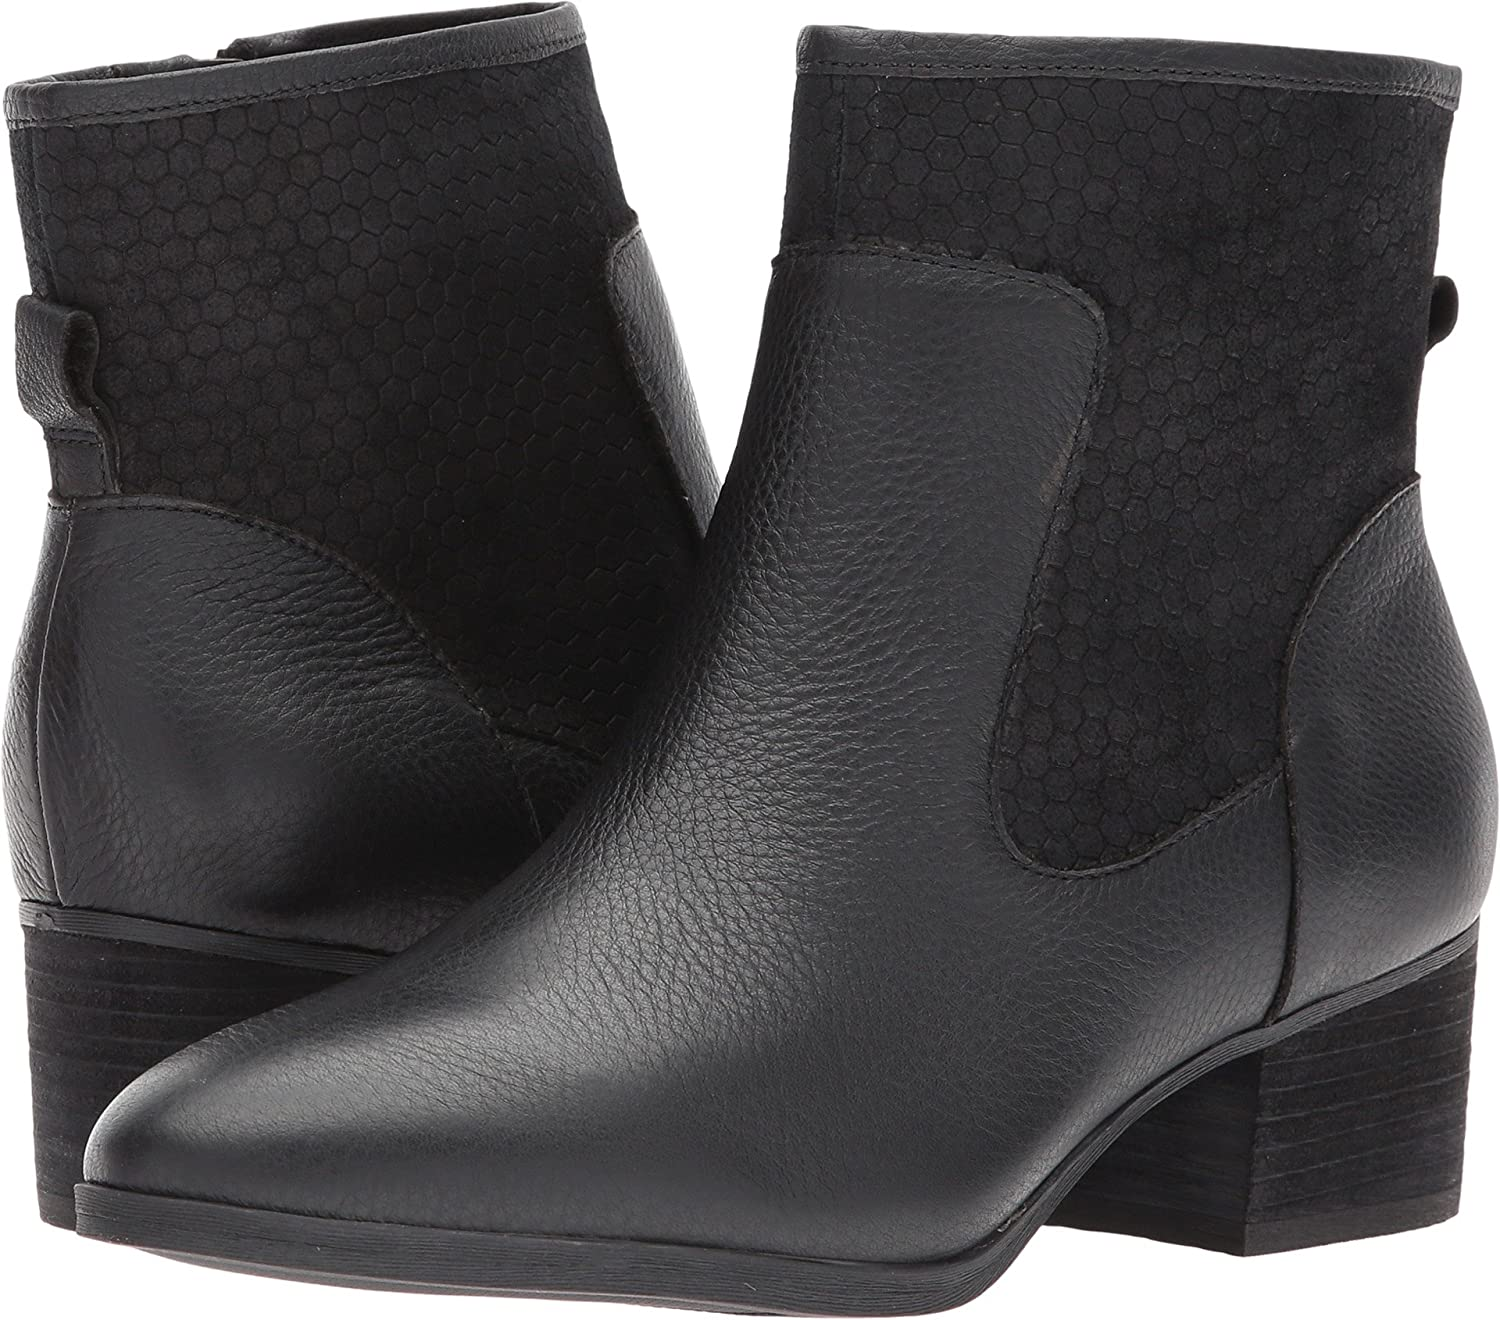 Dr. Scholl's Womens Tawny Original Collection